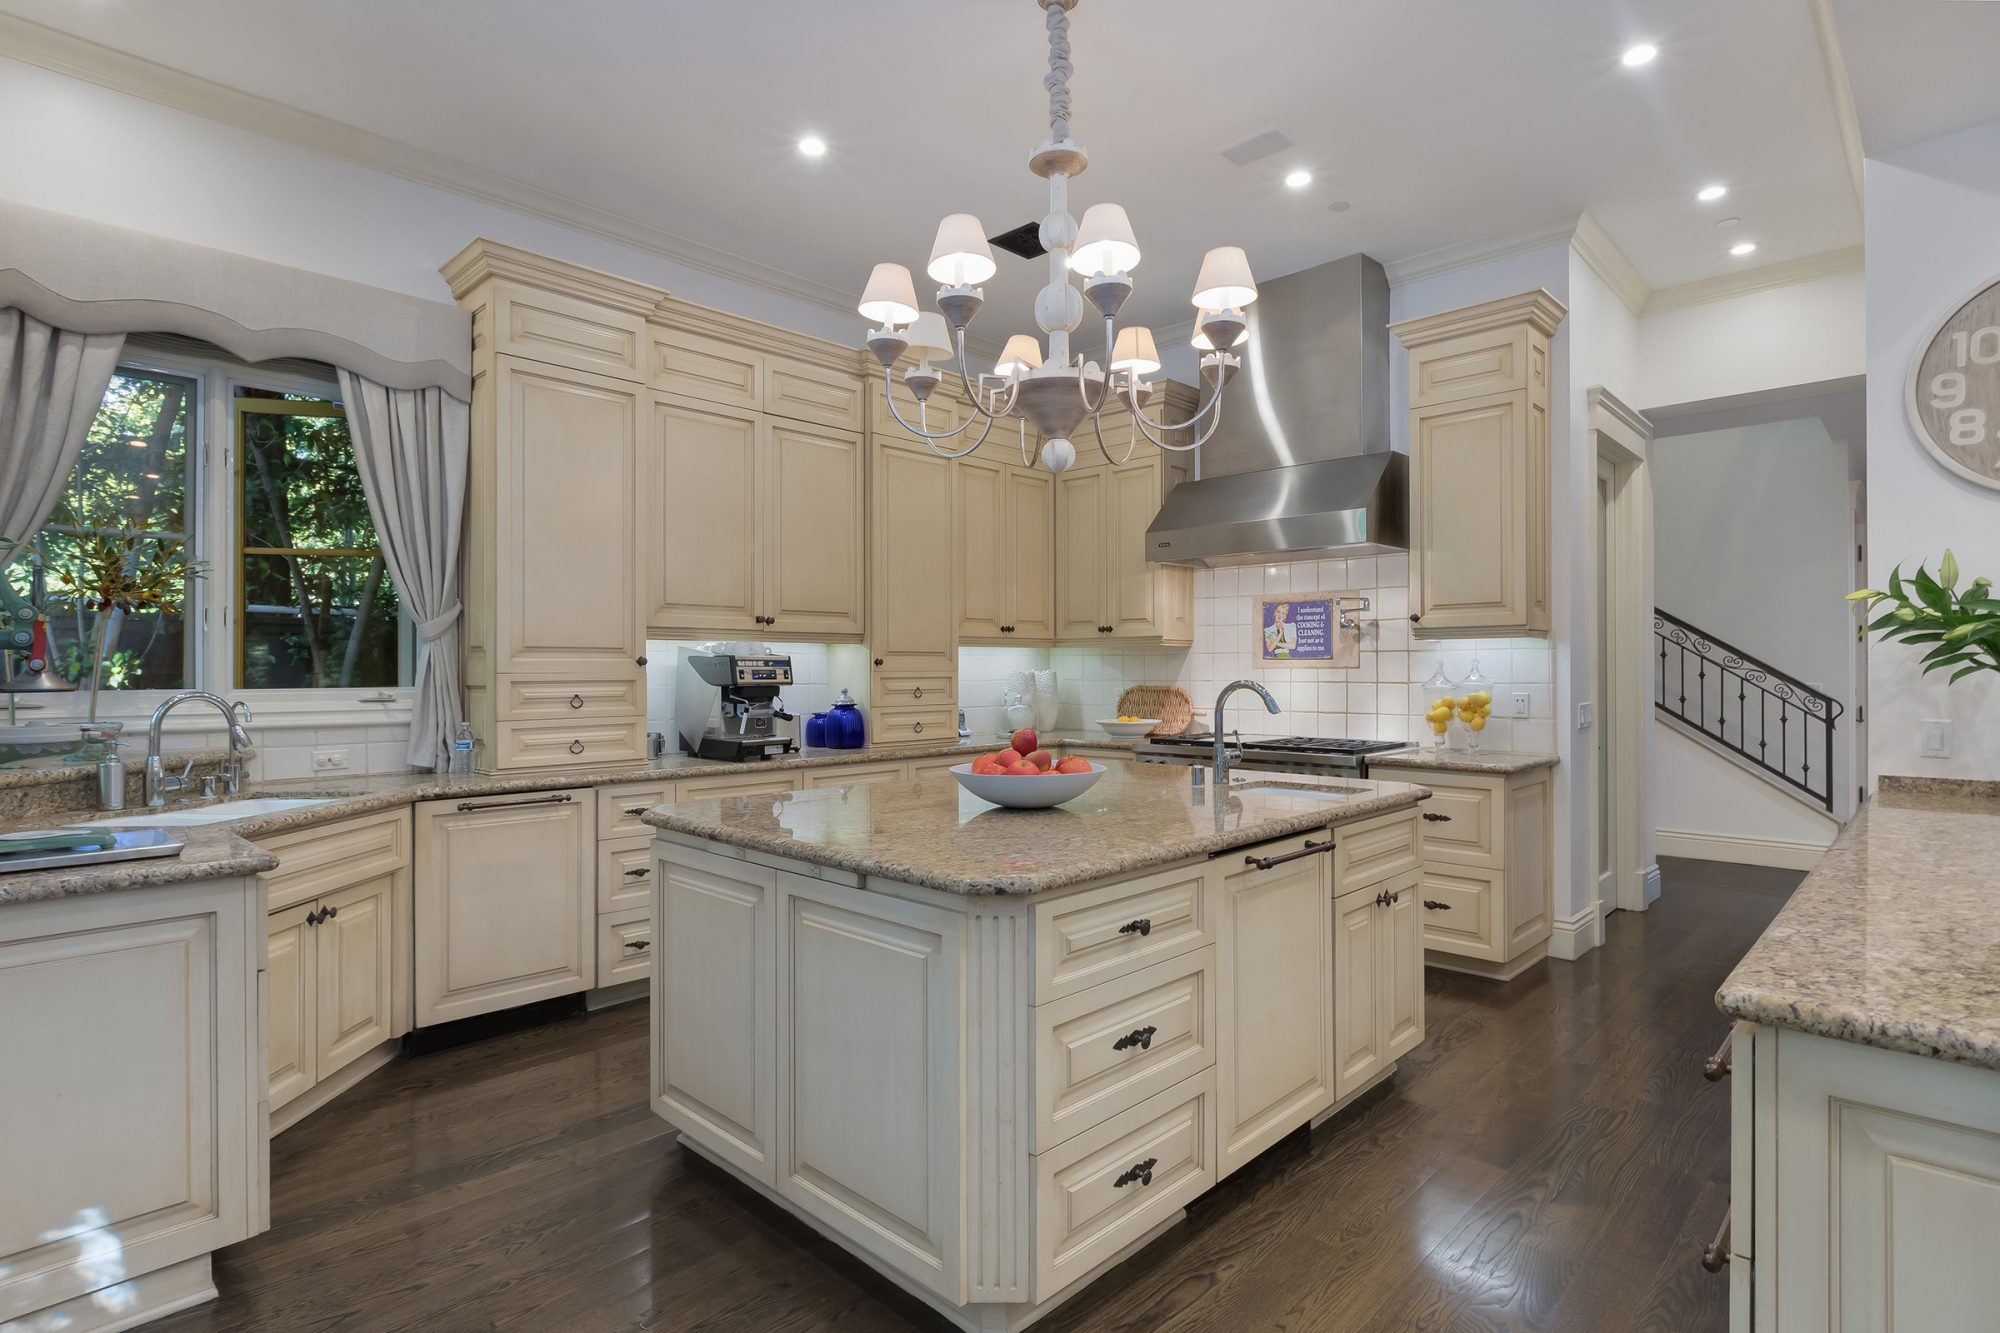 Former Britney Spears Home for Sale